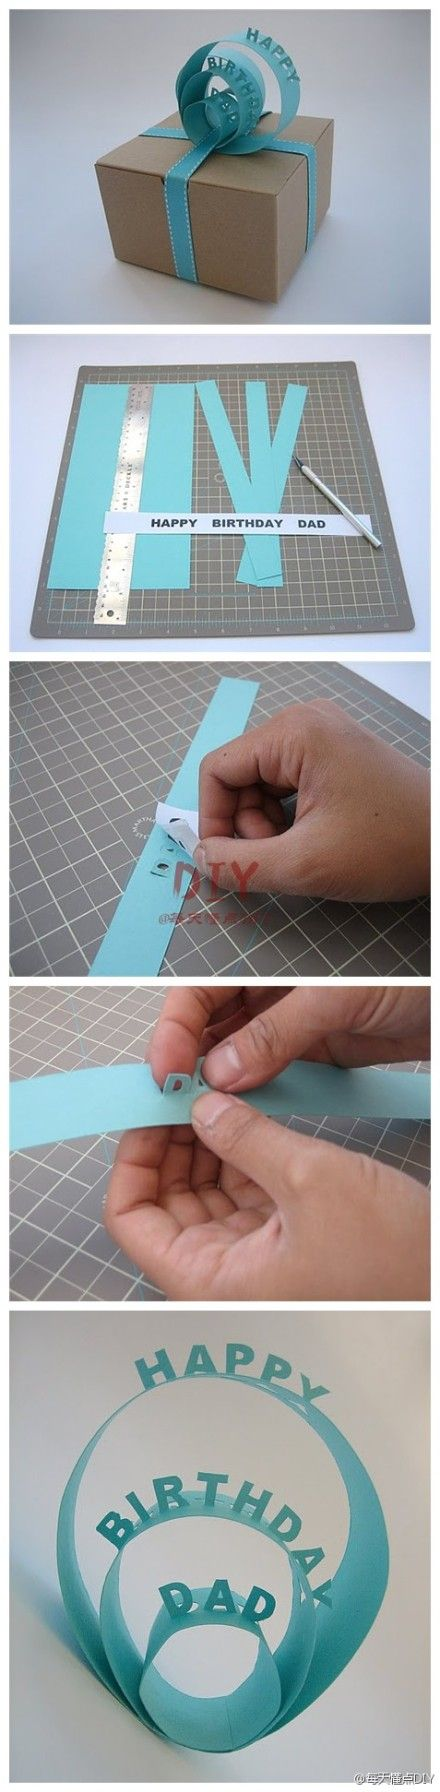 真似したいすな    Creative gift wrapping  ::::: ❥